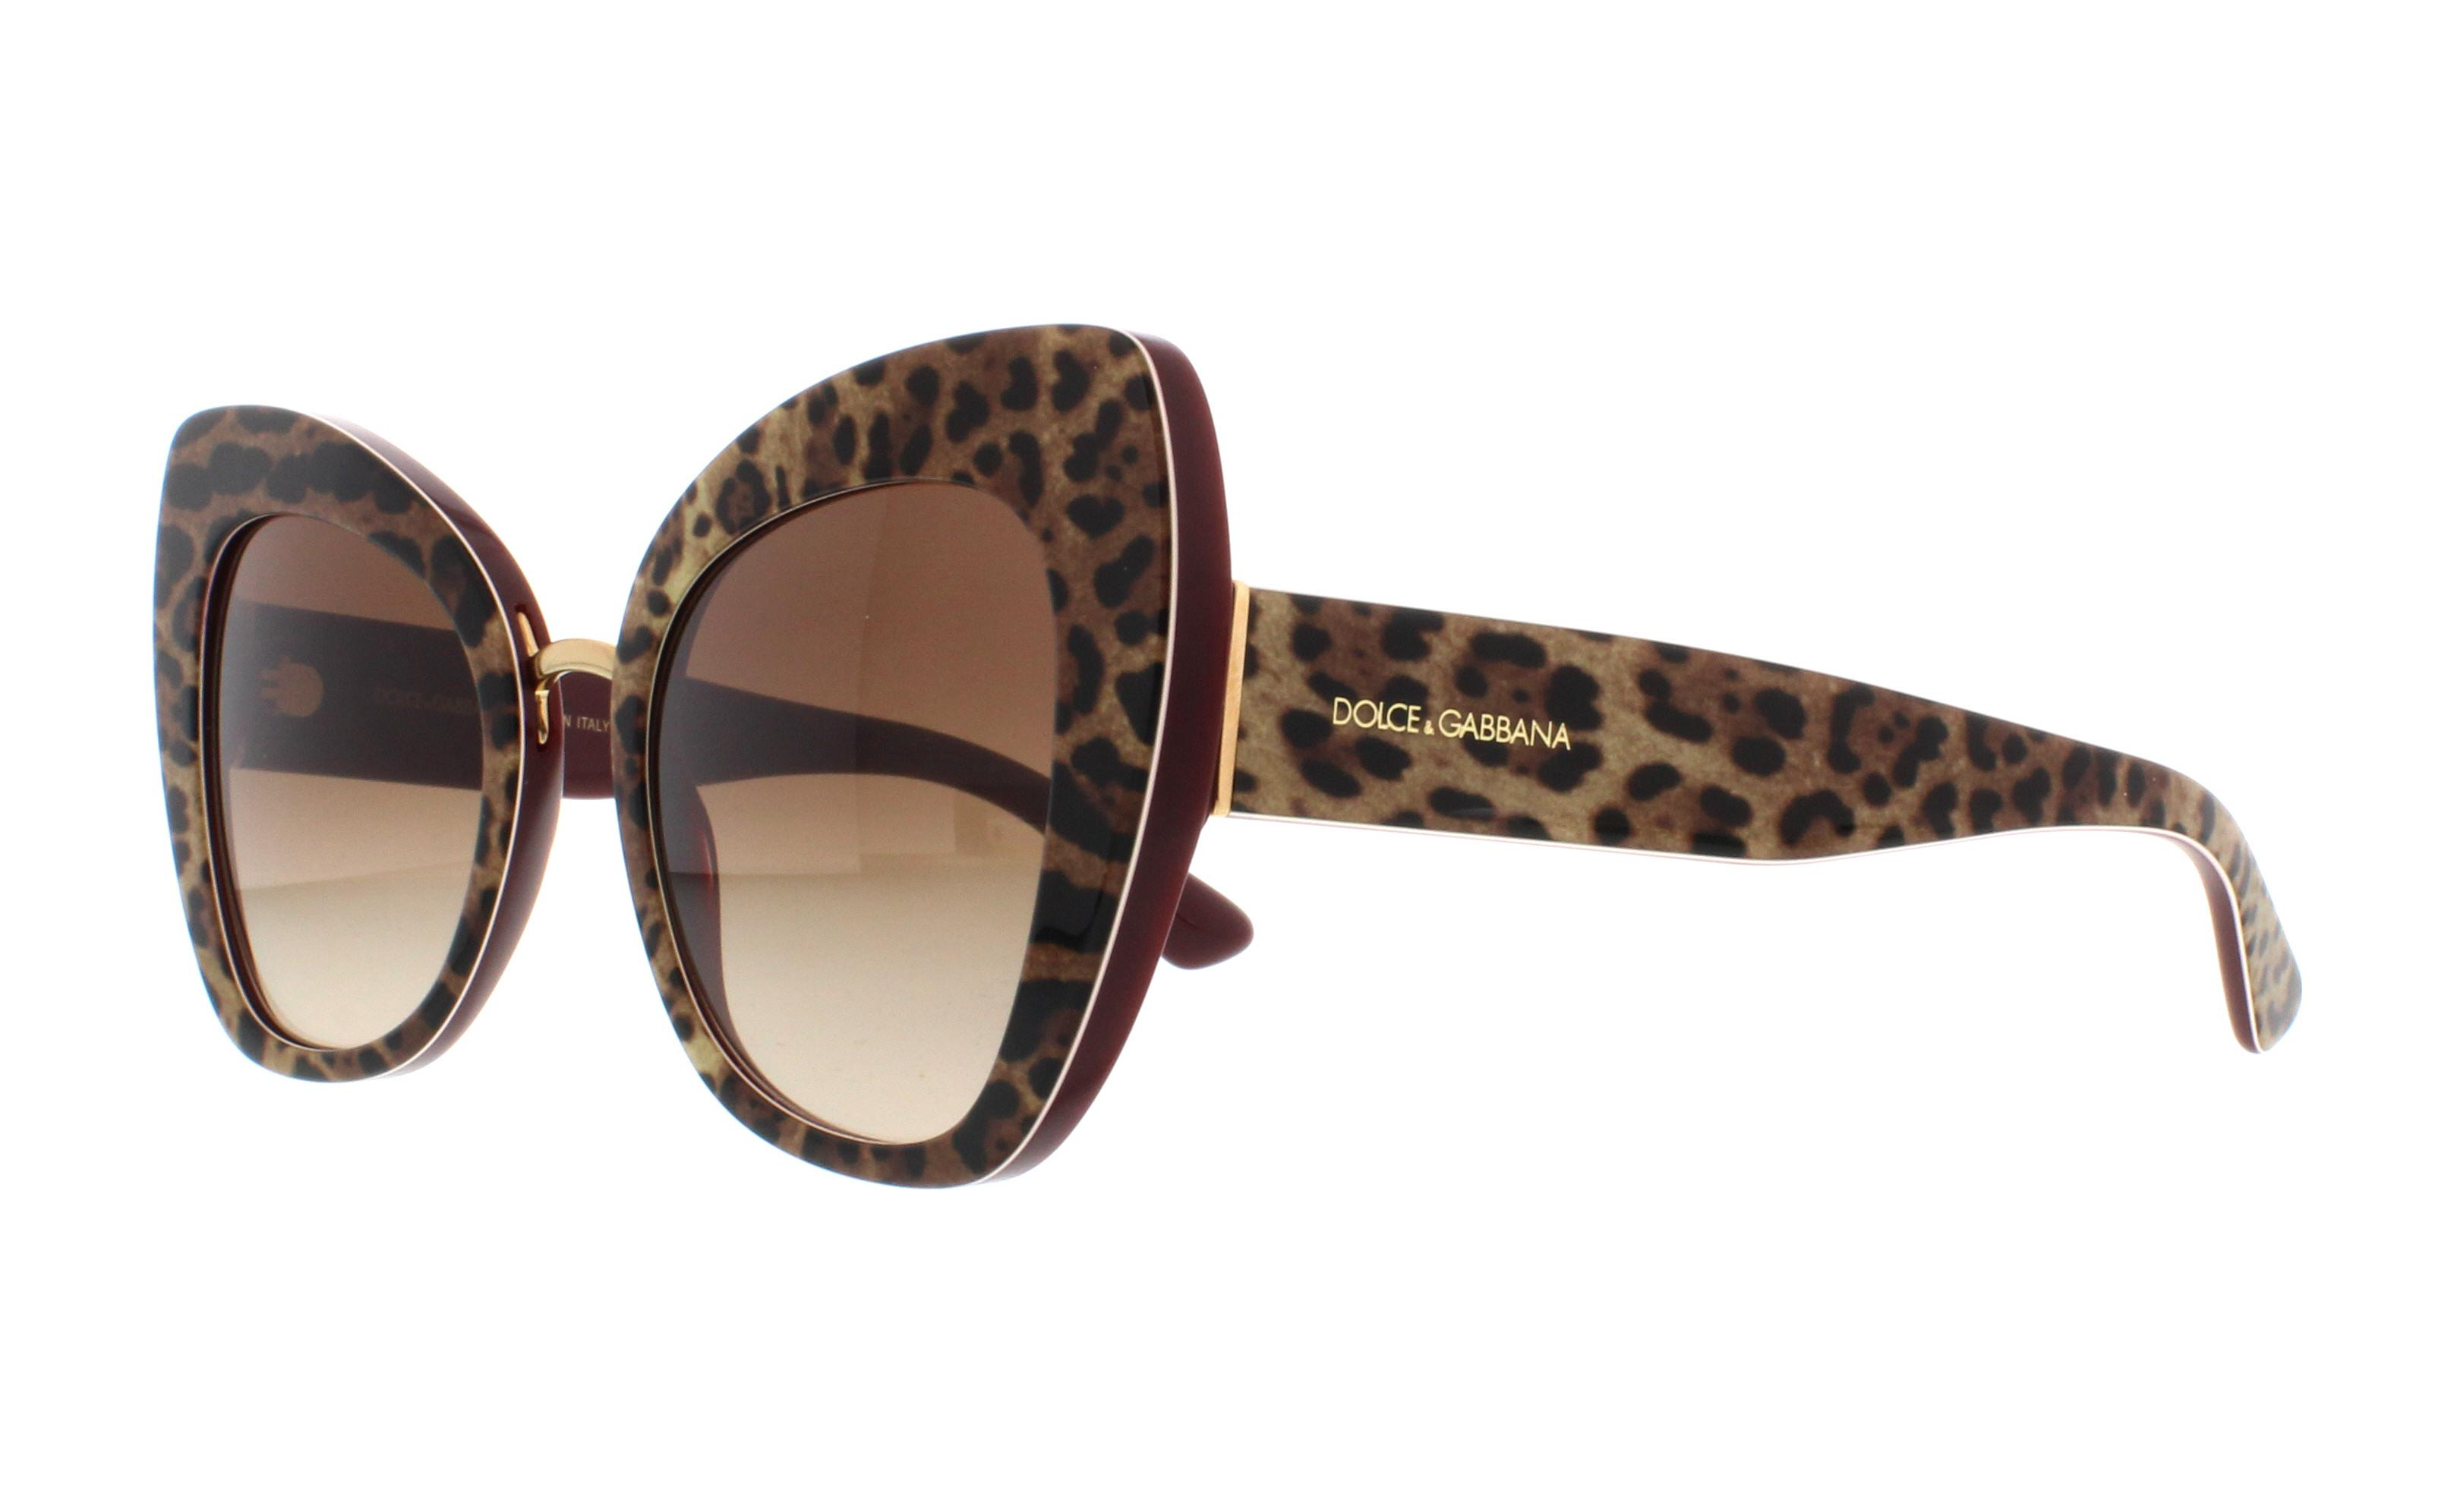 2fa33721db7 DOLCE   GABBANA Sunglasses DG4319F 316113 Leo On Bordeaux 51MM ...